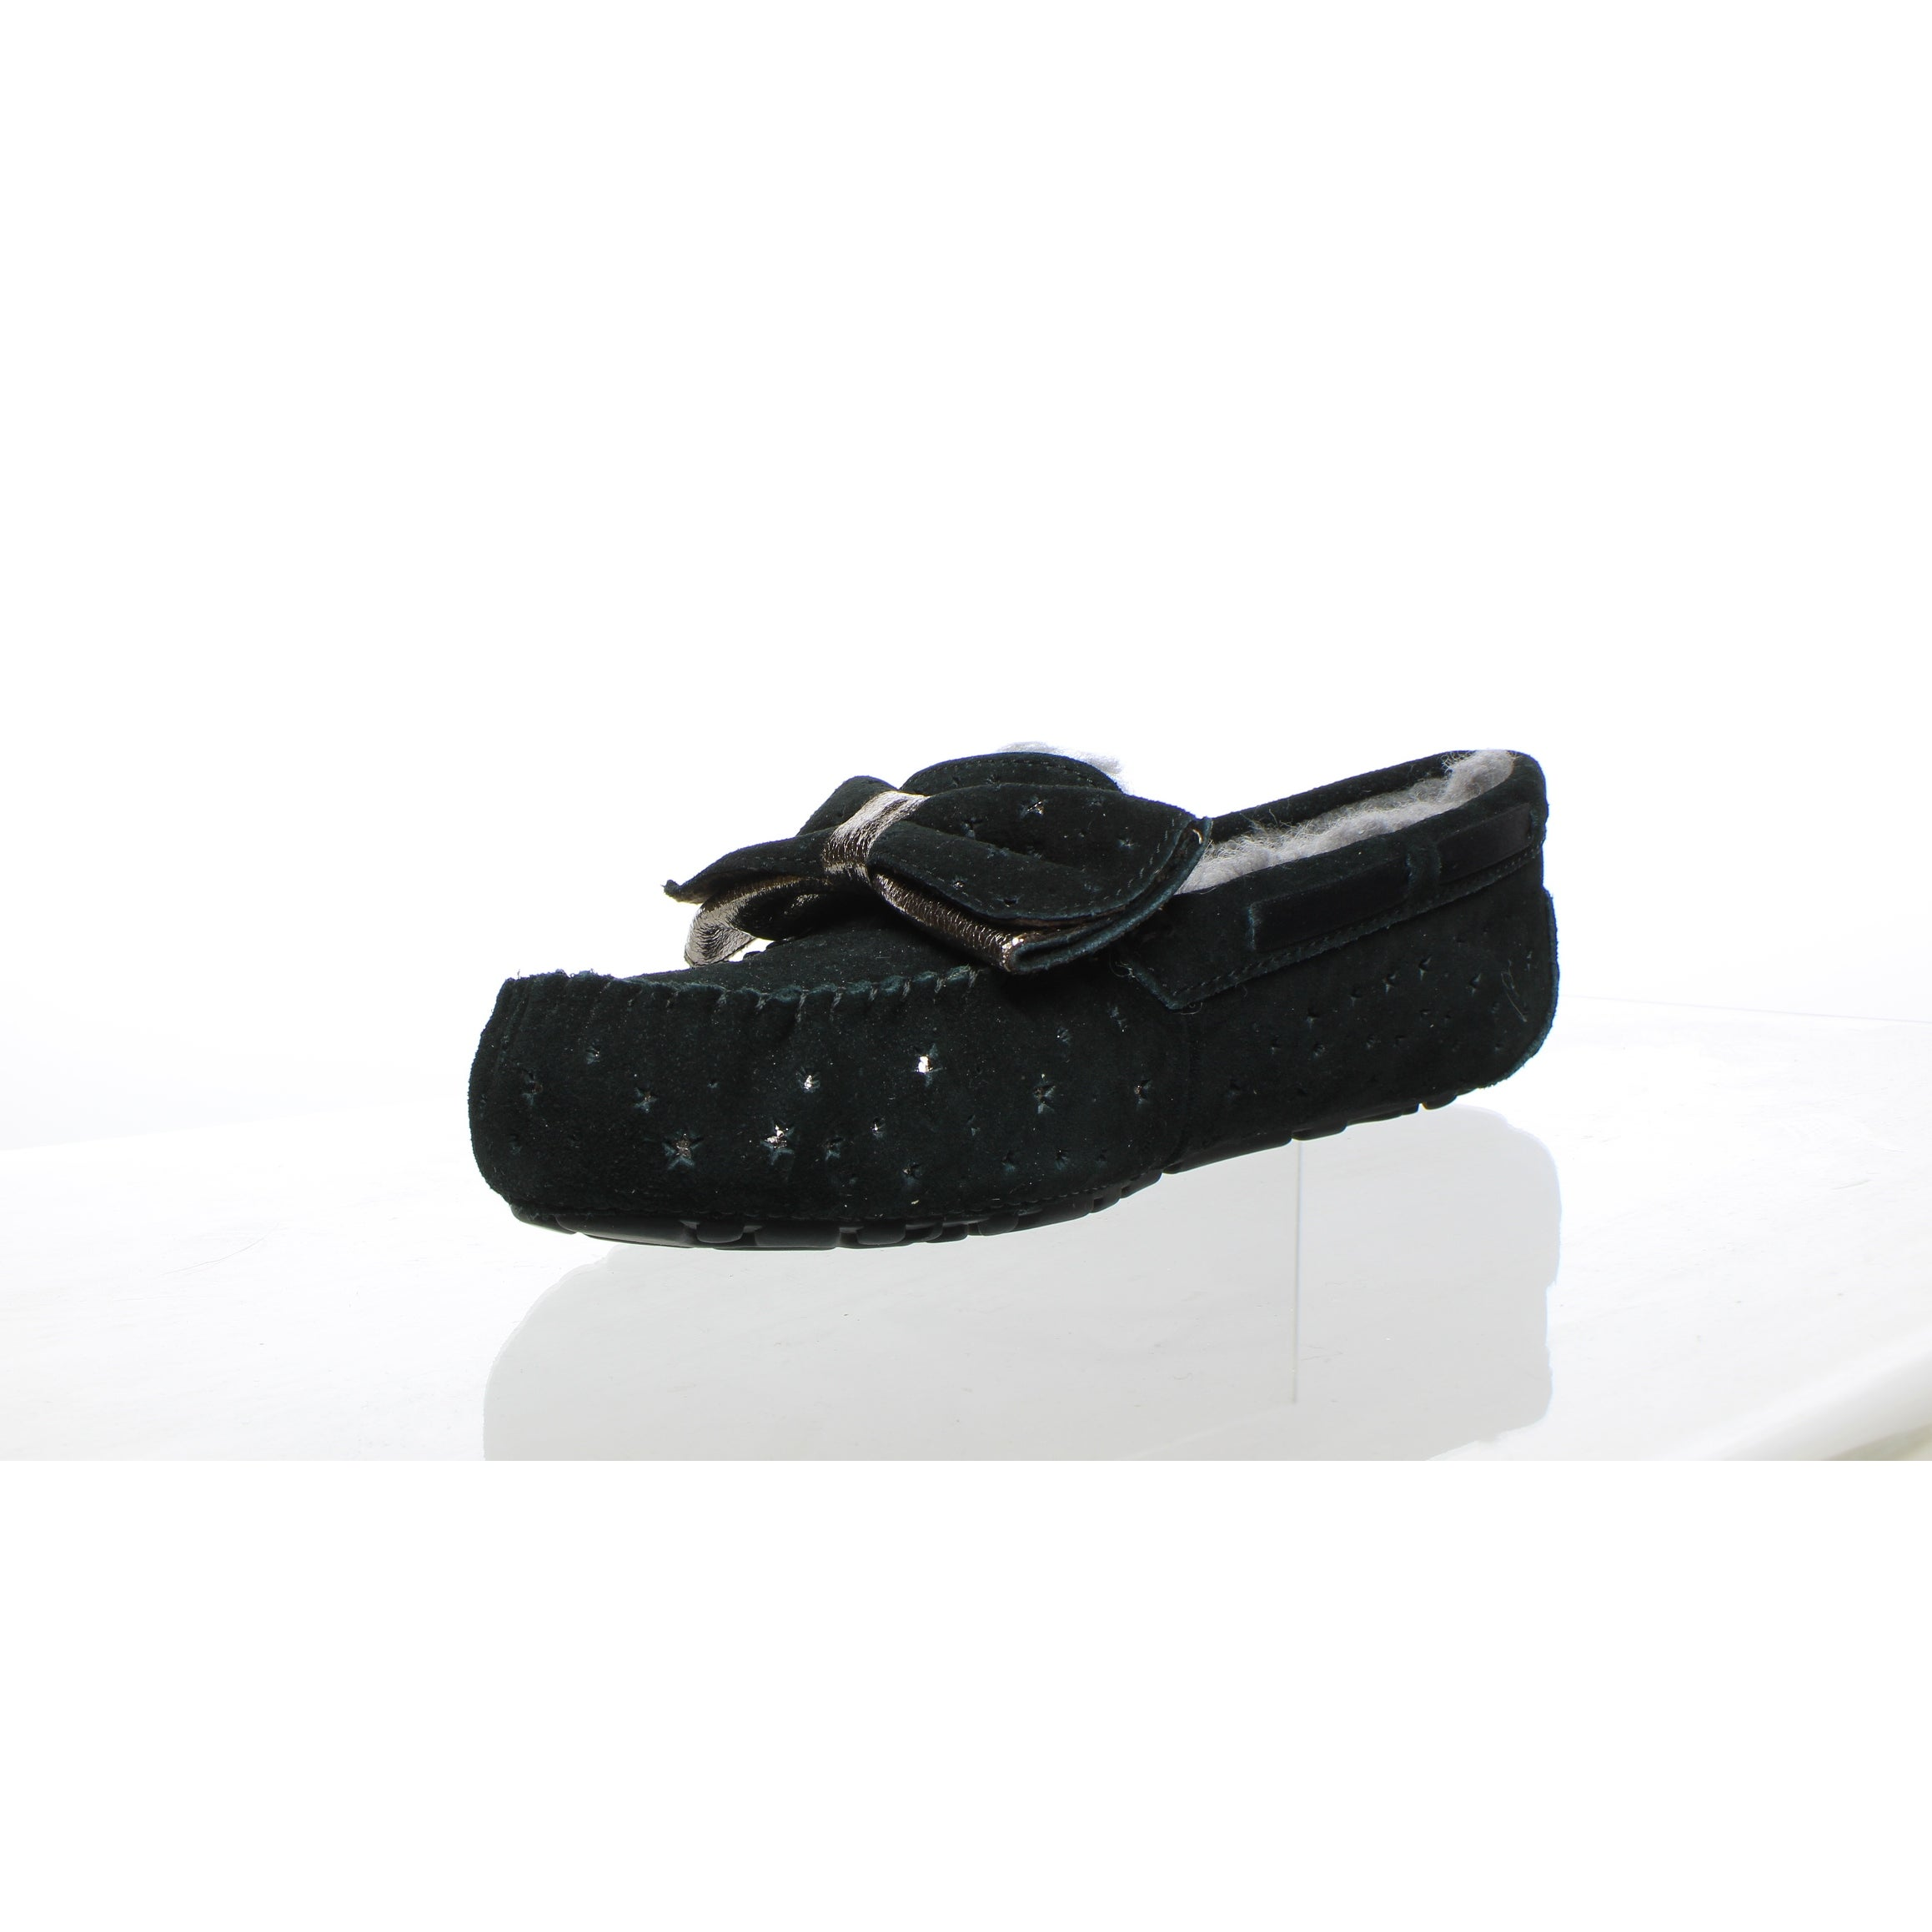 f4075a787e9 UGG Womens Dakota Black Moccasin Slippers Size 8